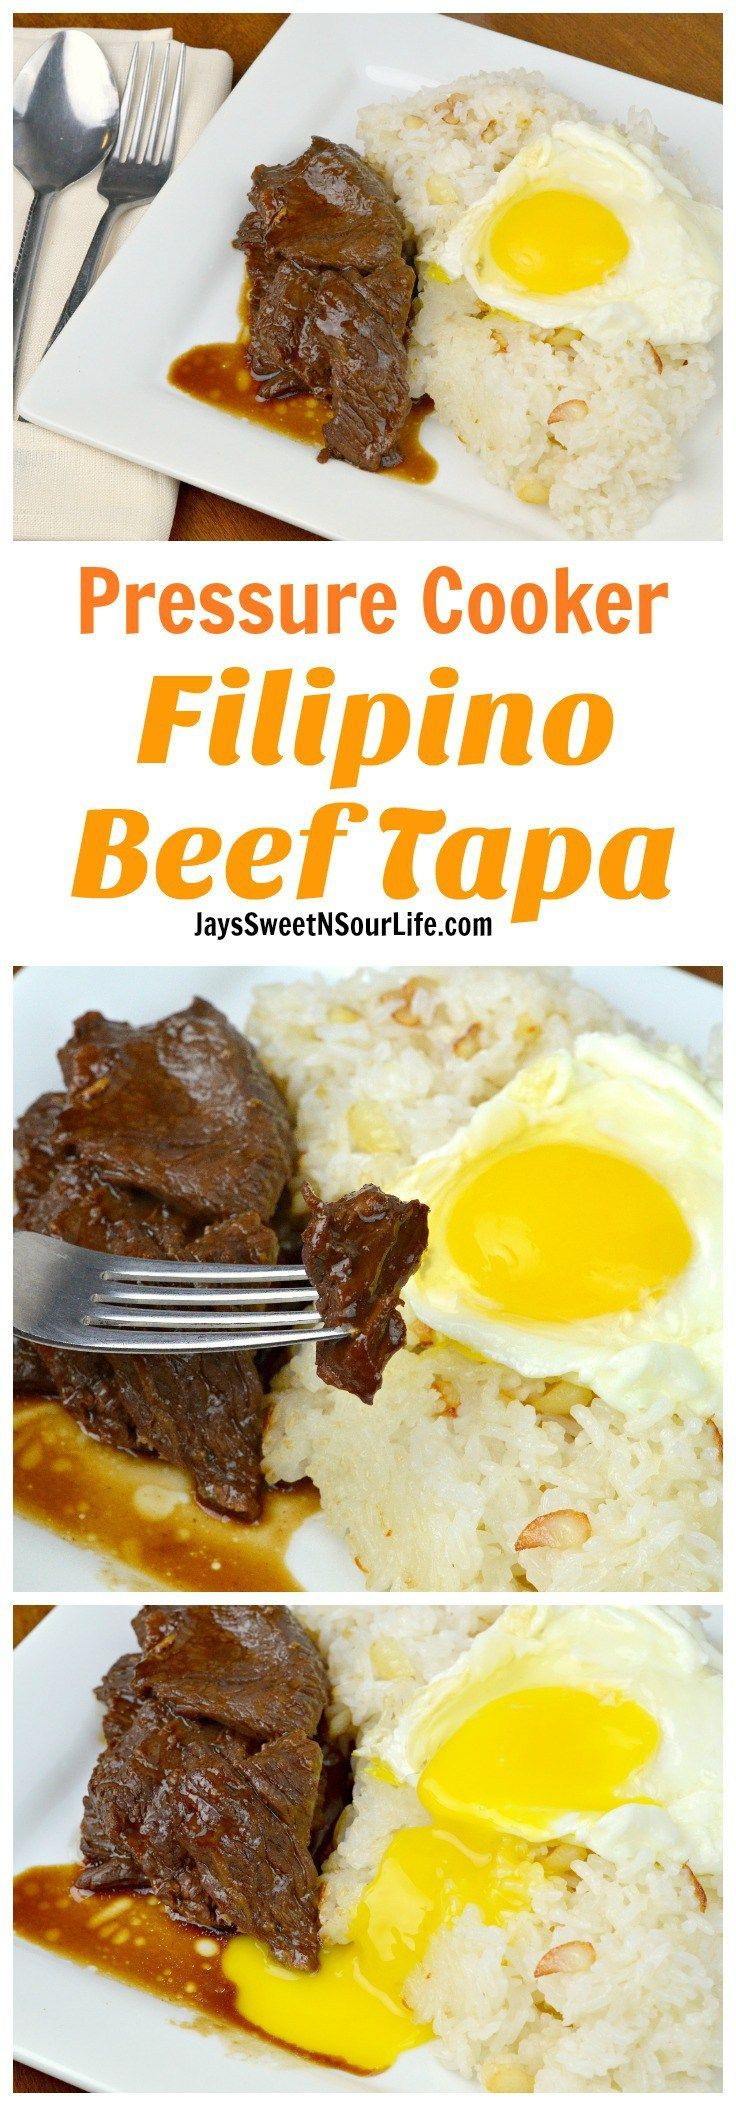 Pressure Cooker Filipino Beef Tapa is a traditional Filipino breakfast dish made inside a pressure cooker. It cuts like butter and is finger licking good.